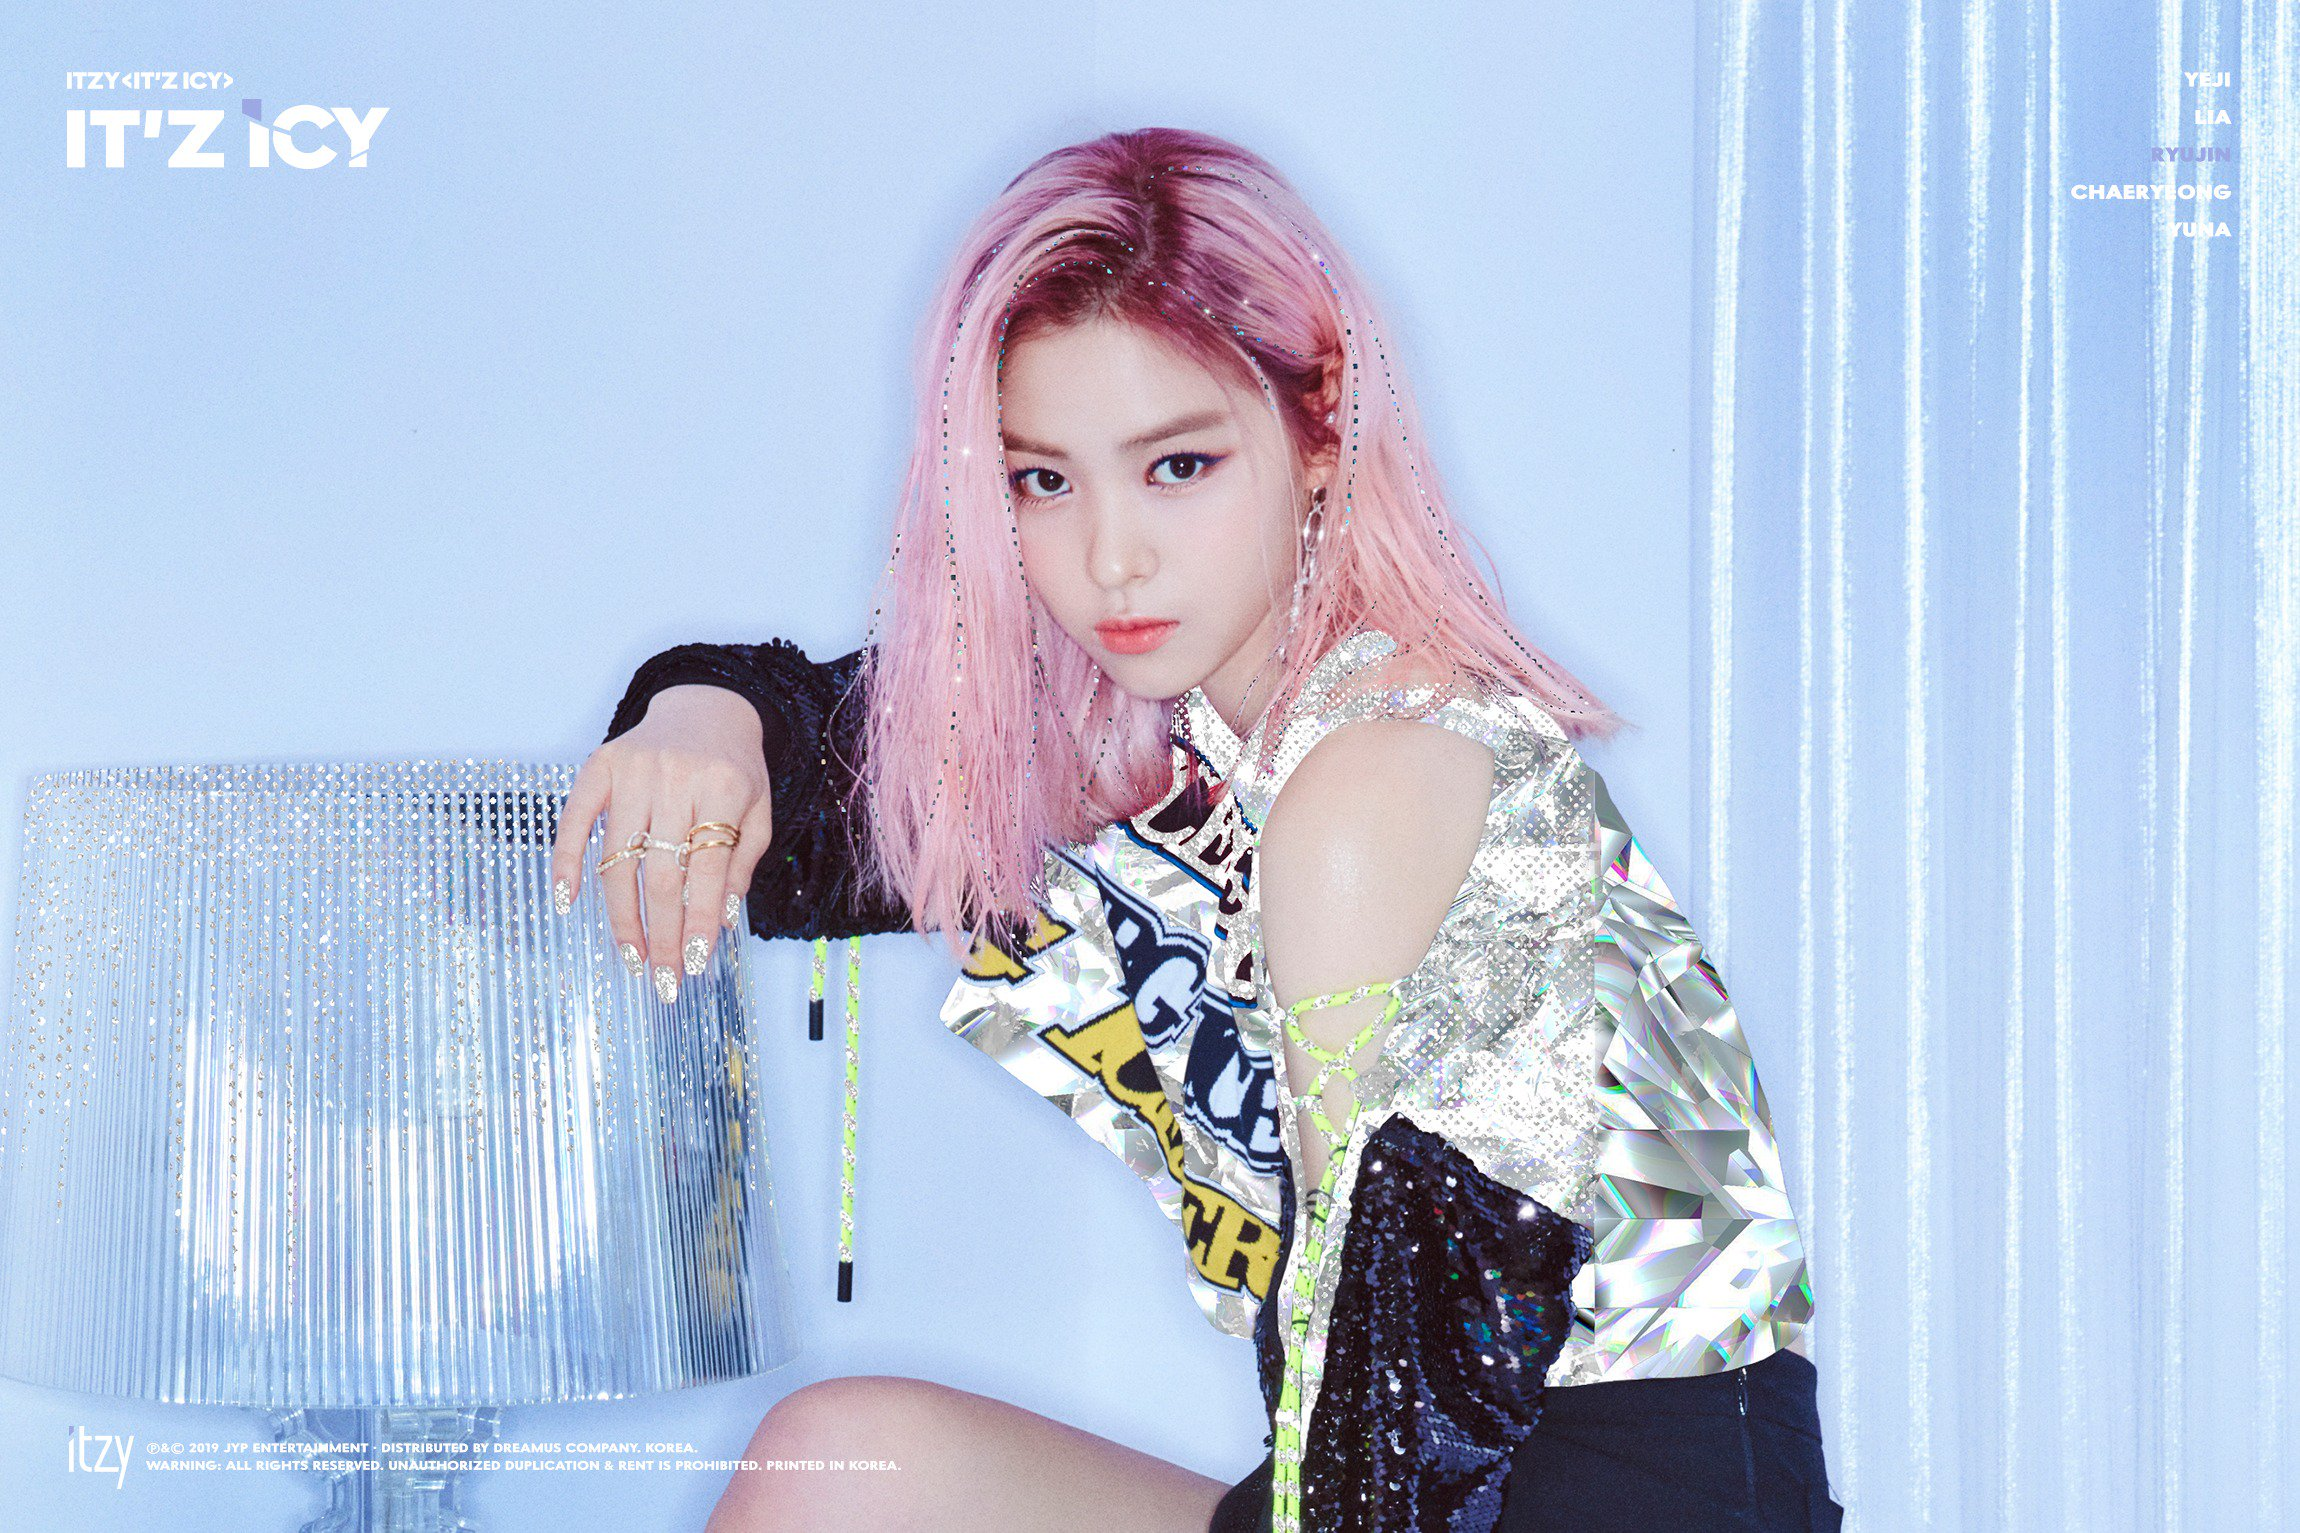 Itzy It Z Icy Ryujin Teaser Photos K Pop Database Dbkpop Com